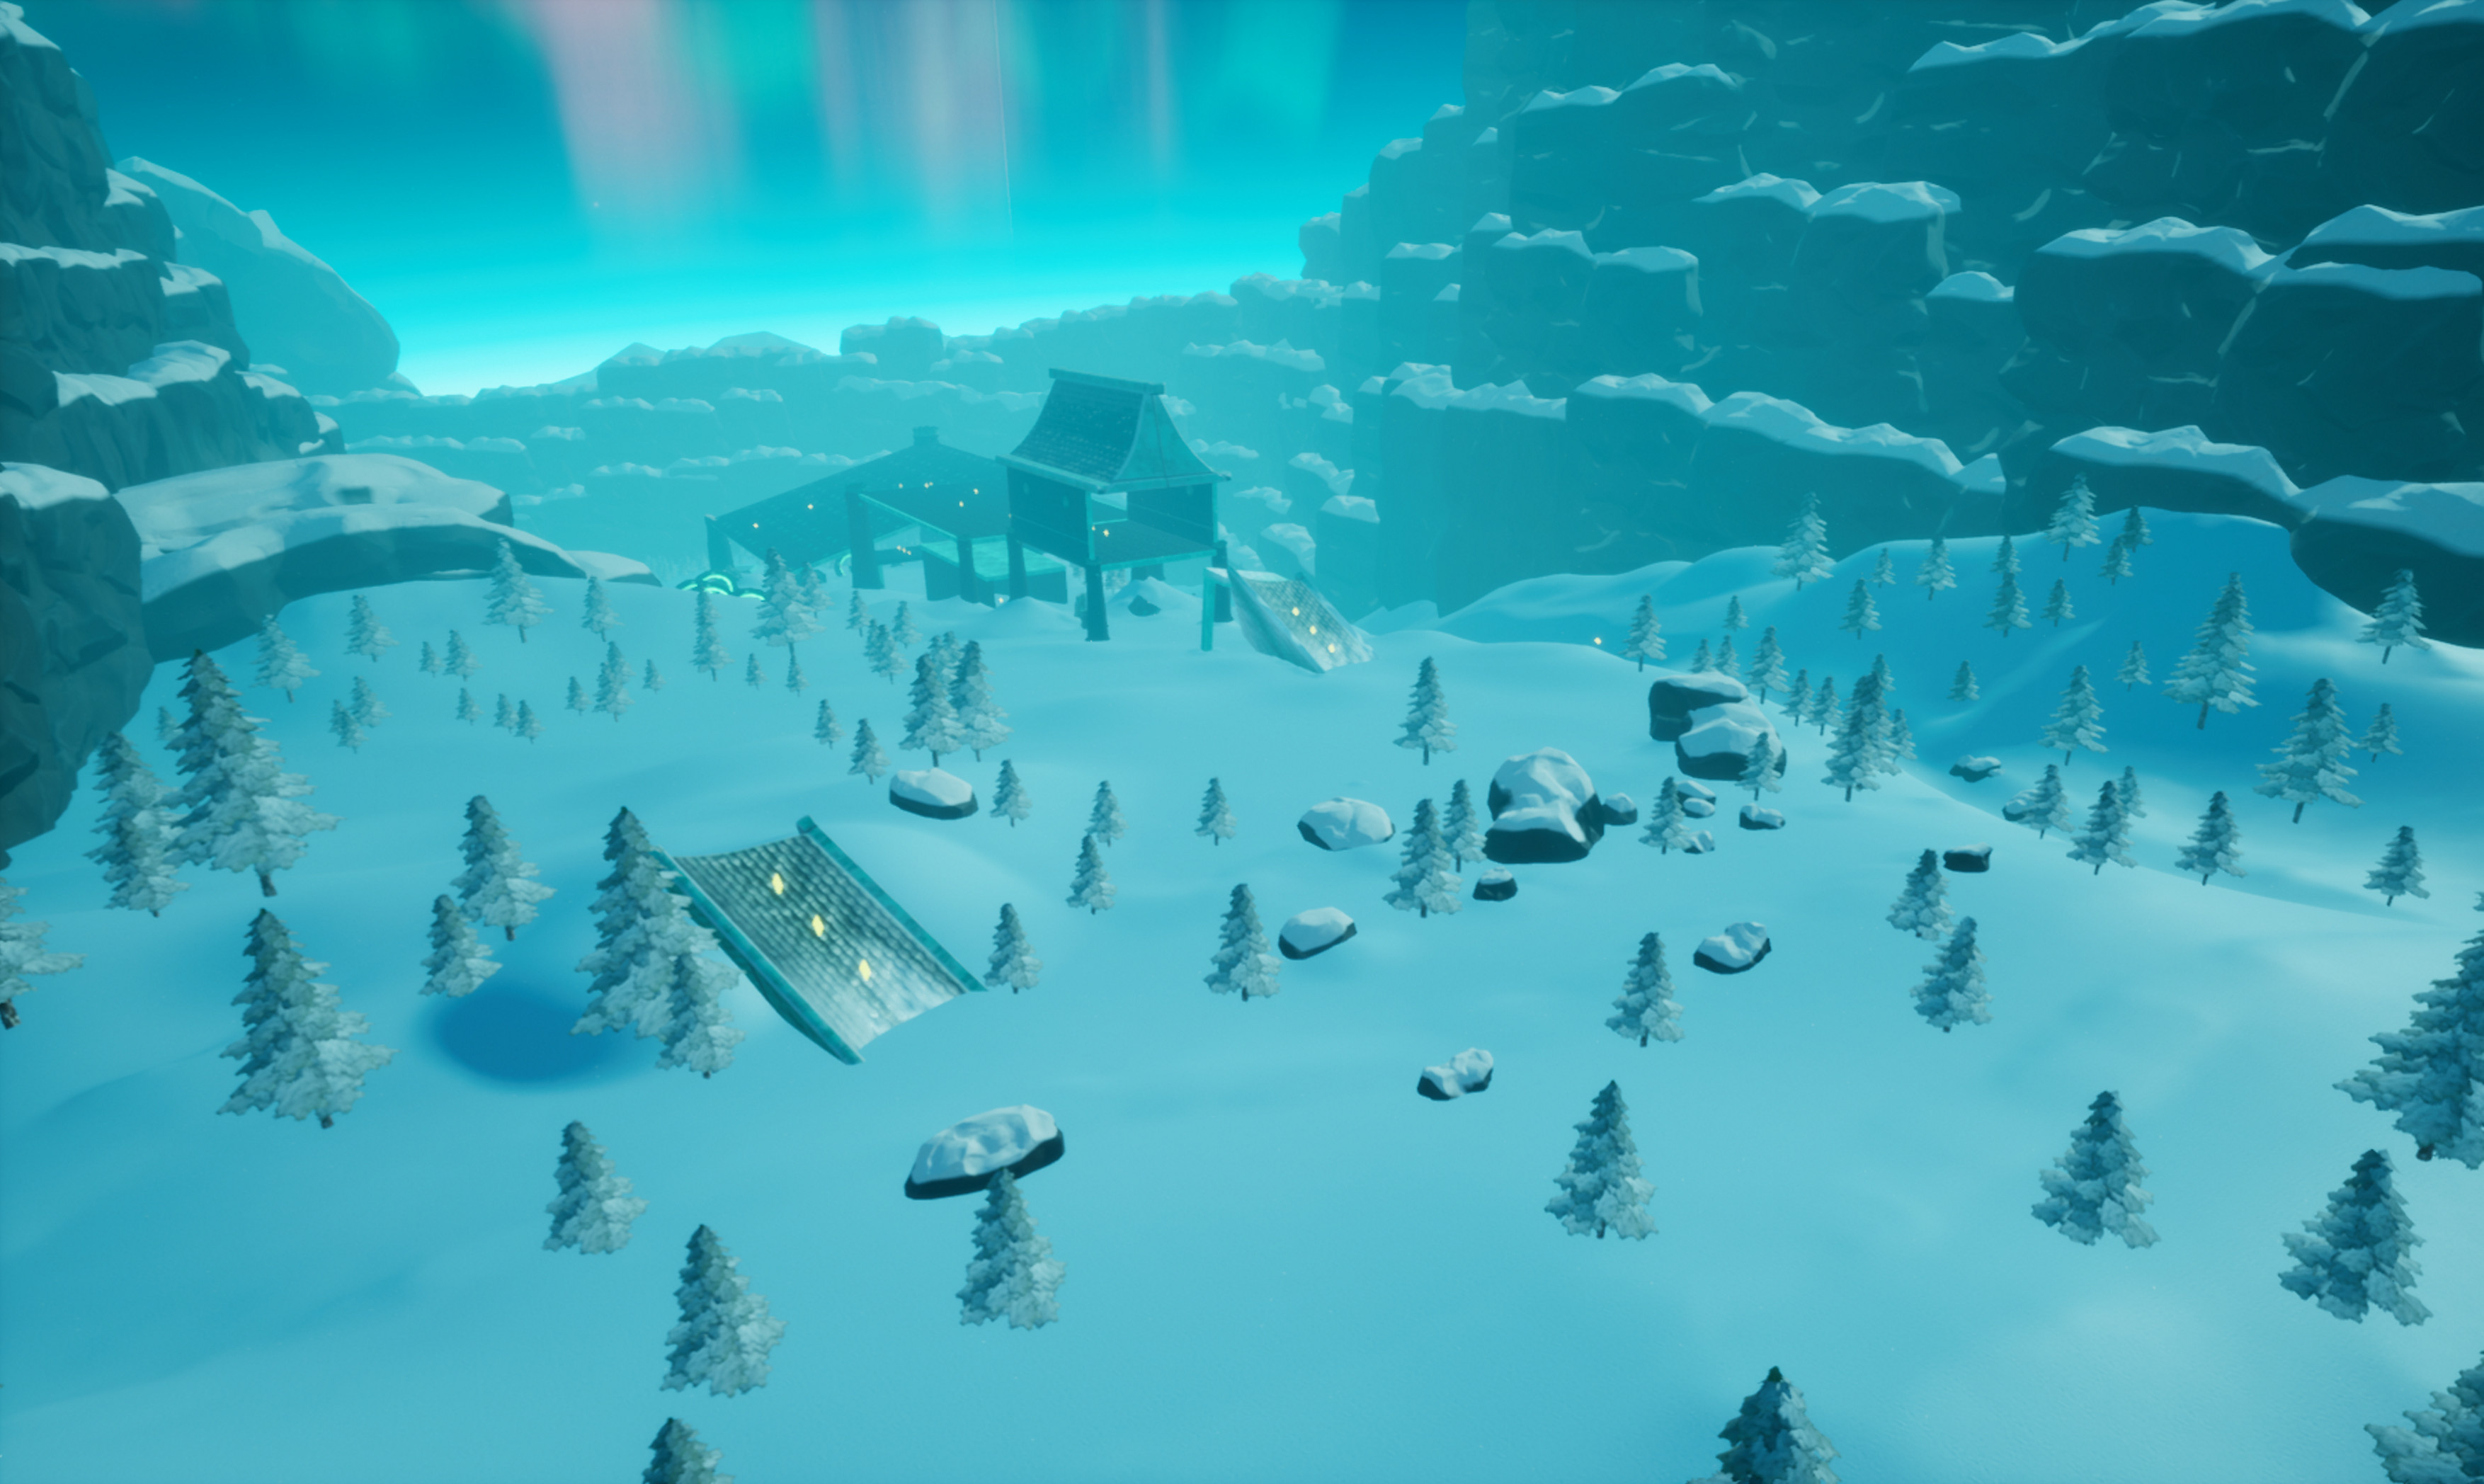 Overview of the first section in the game.